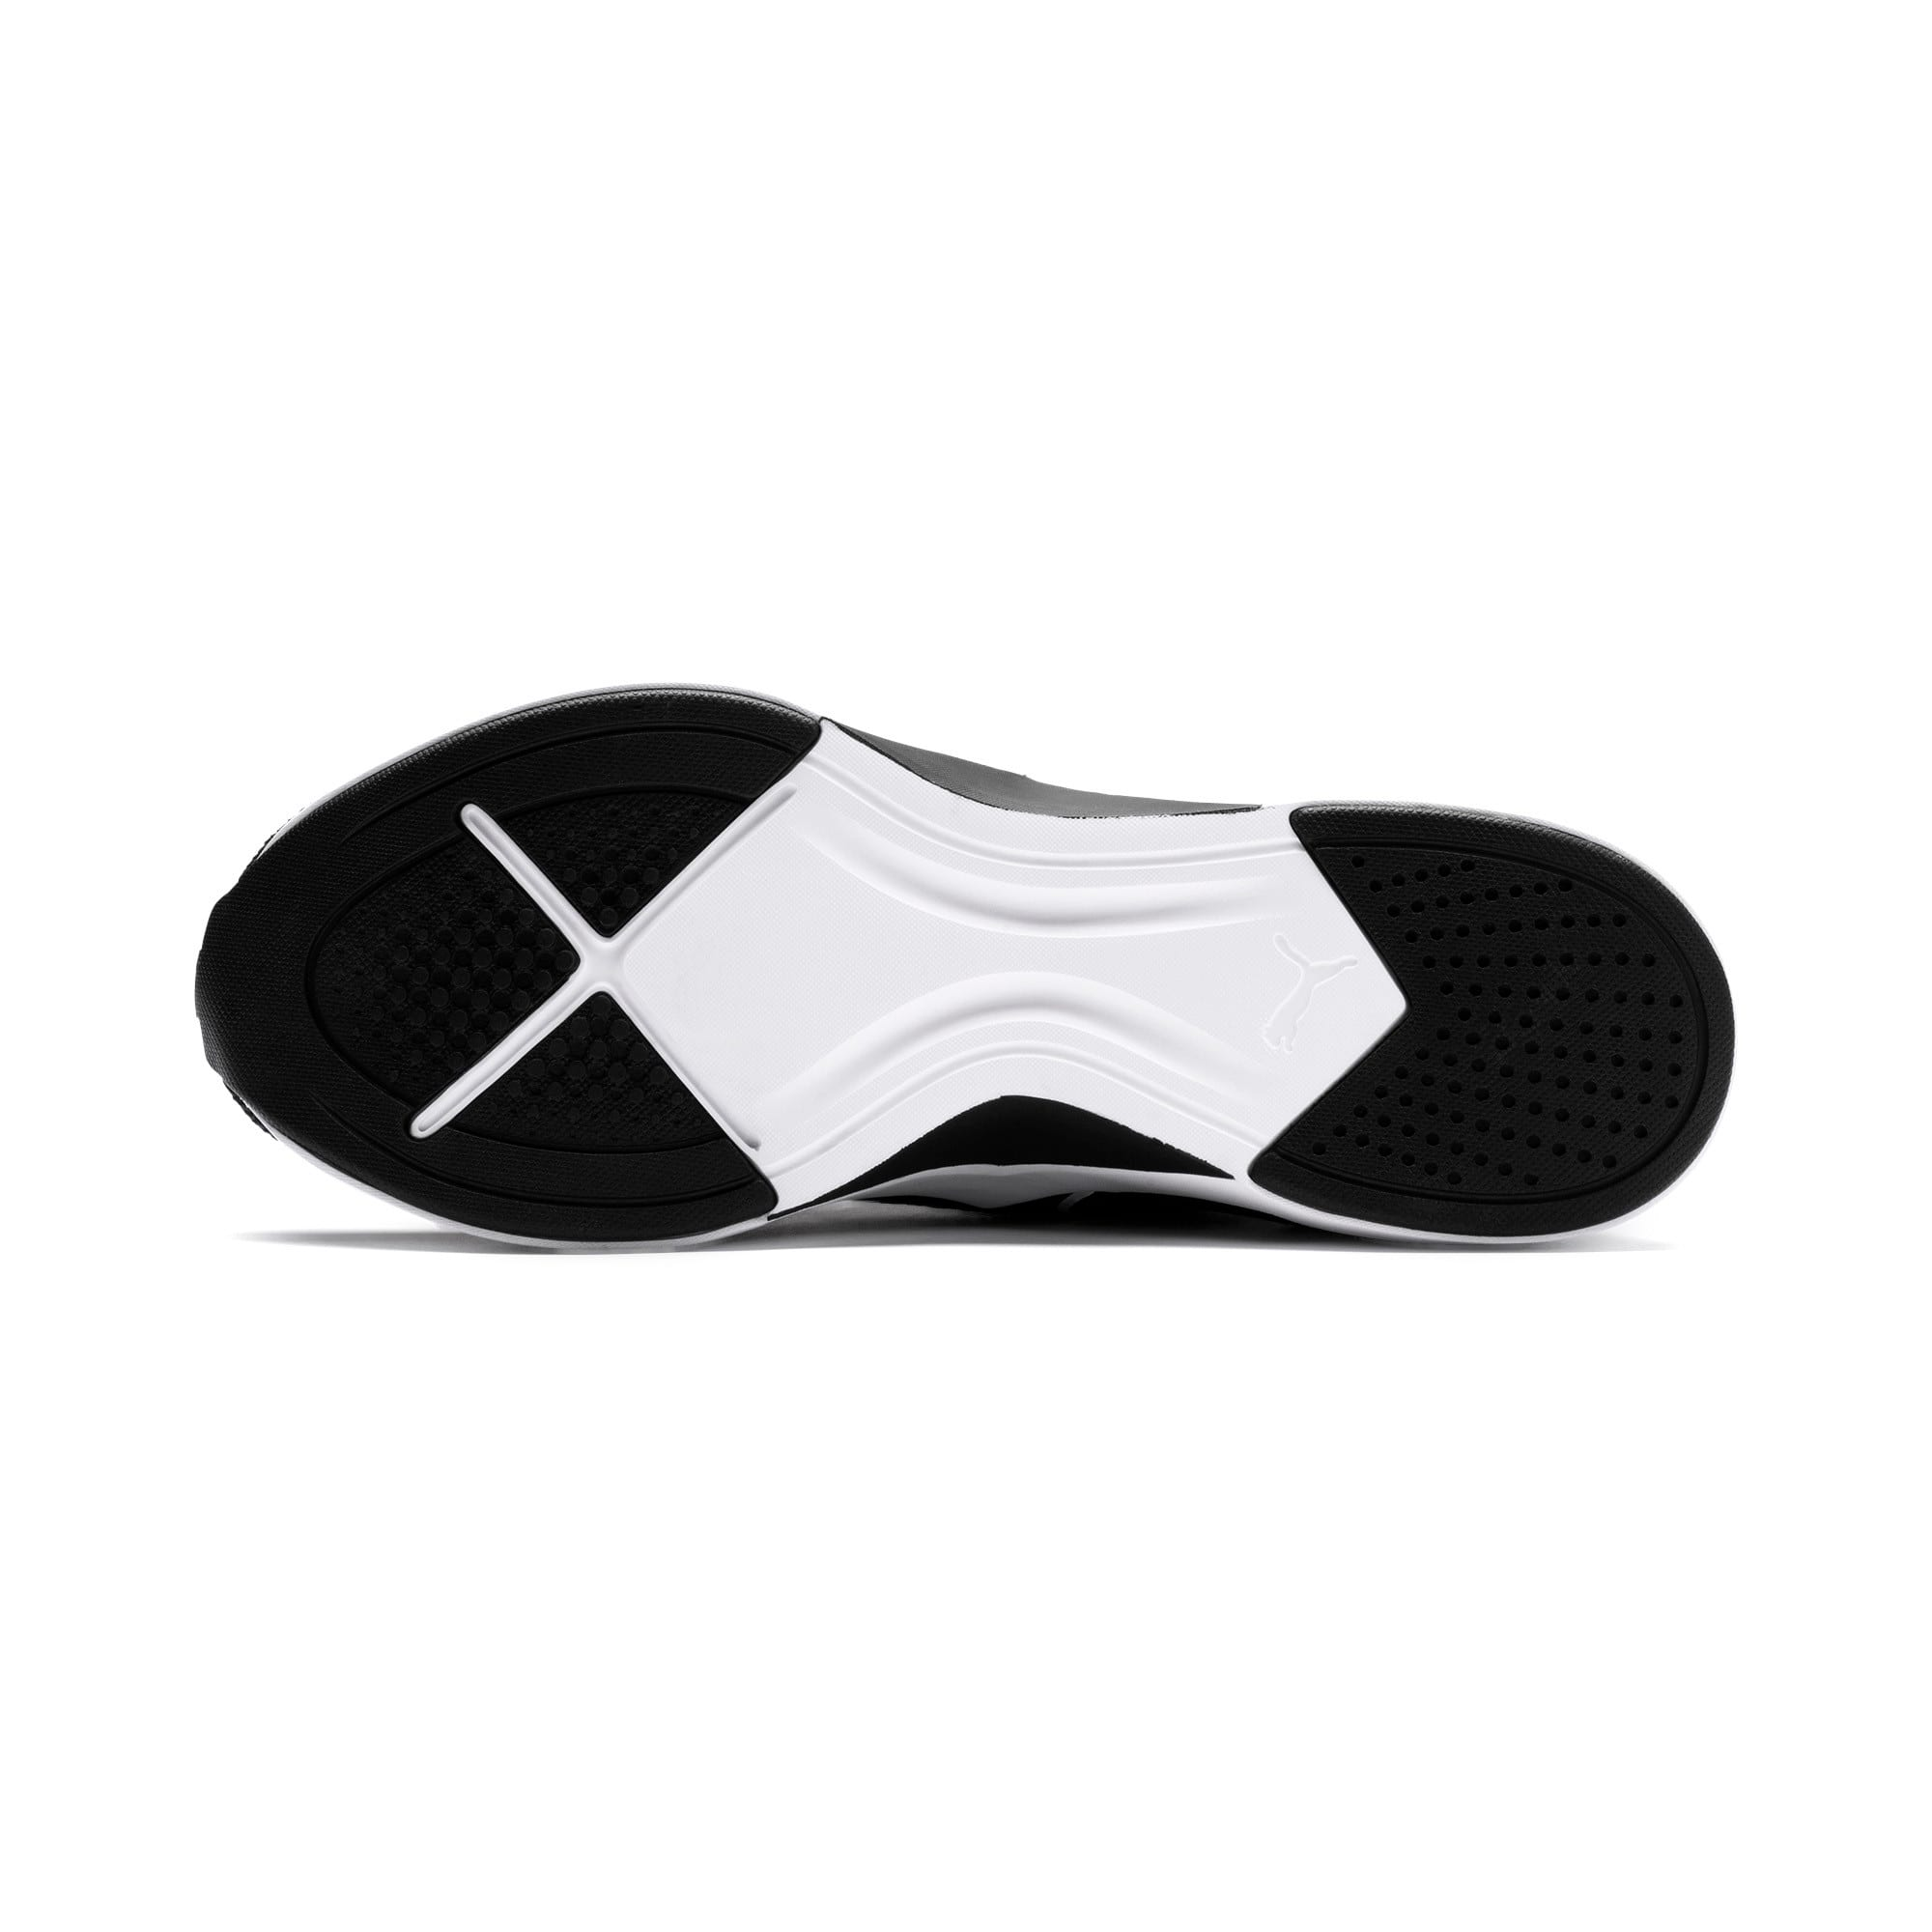 Thumbnail 5 of The Black Incite FS Wave Wn's, Puma Black-Puma White, medium-IND